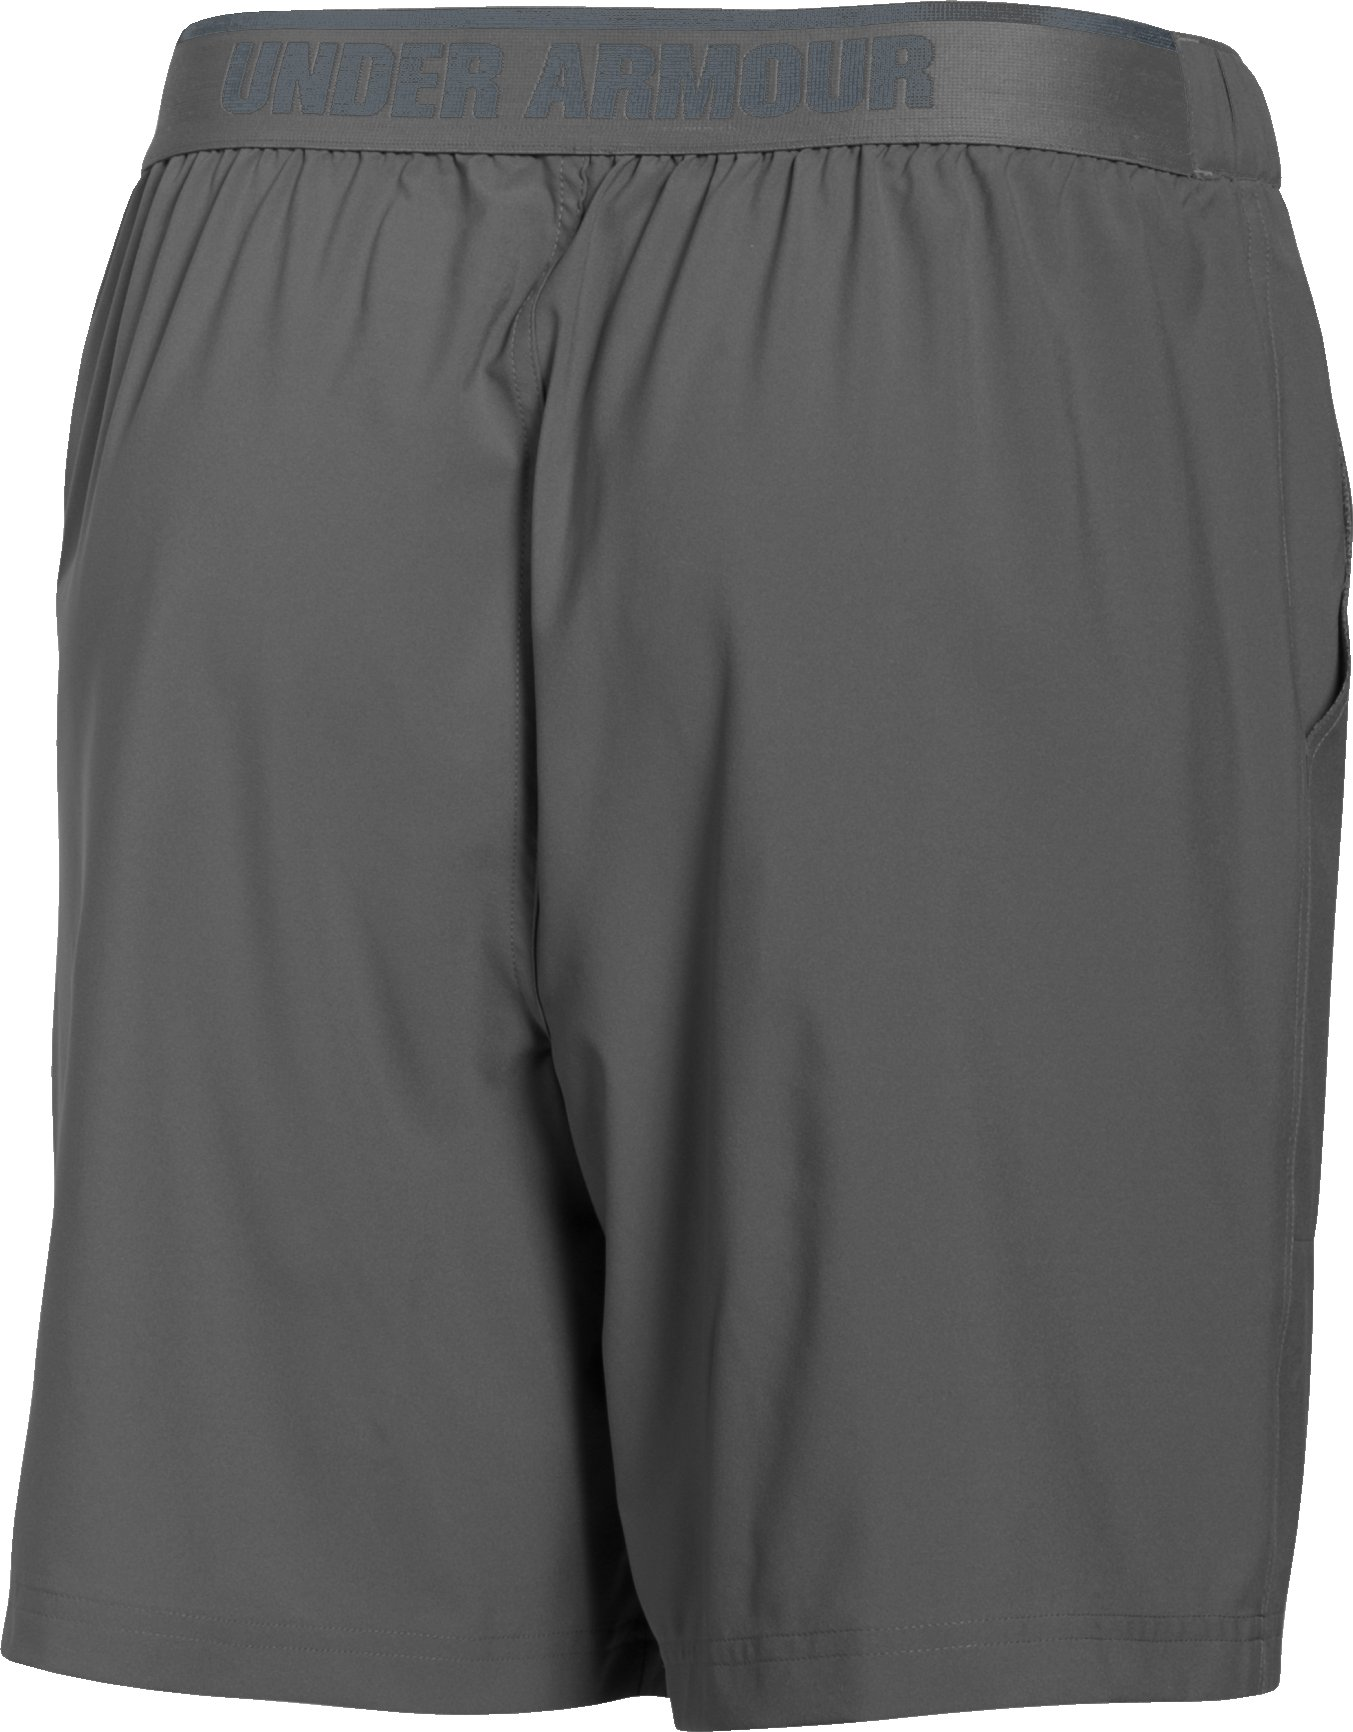 Men's UA Coastal Amphibious Board Shorts, GRANITE